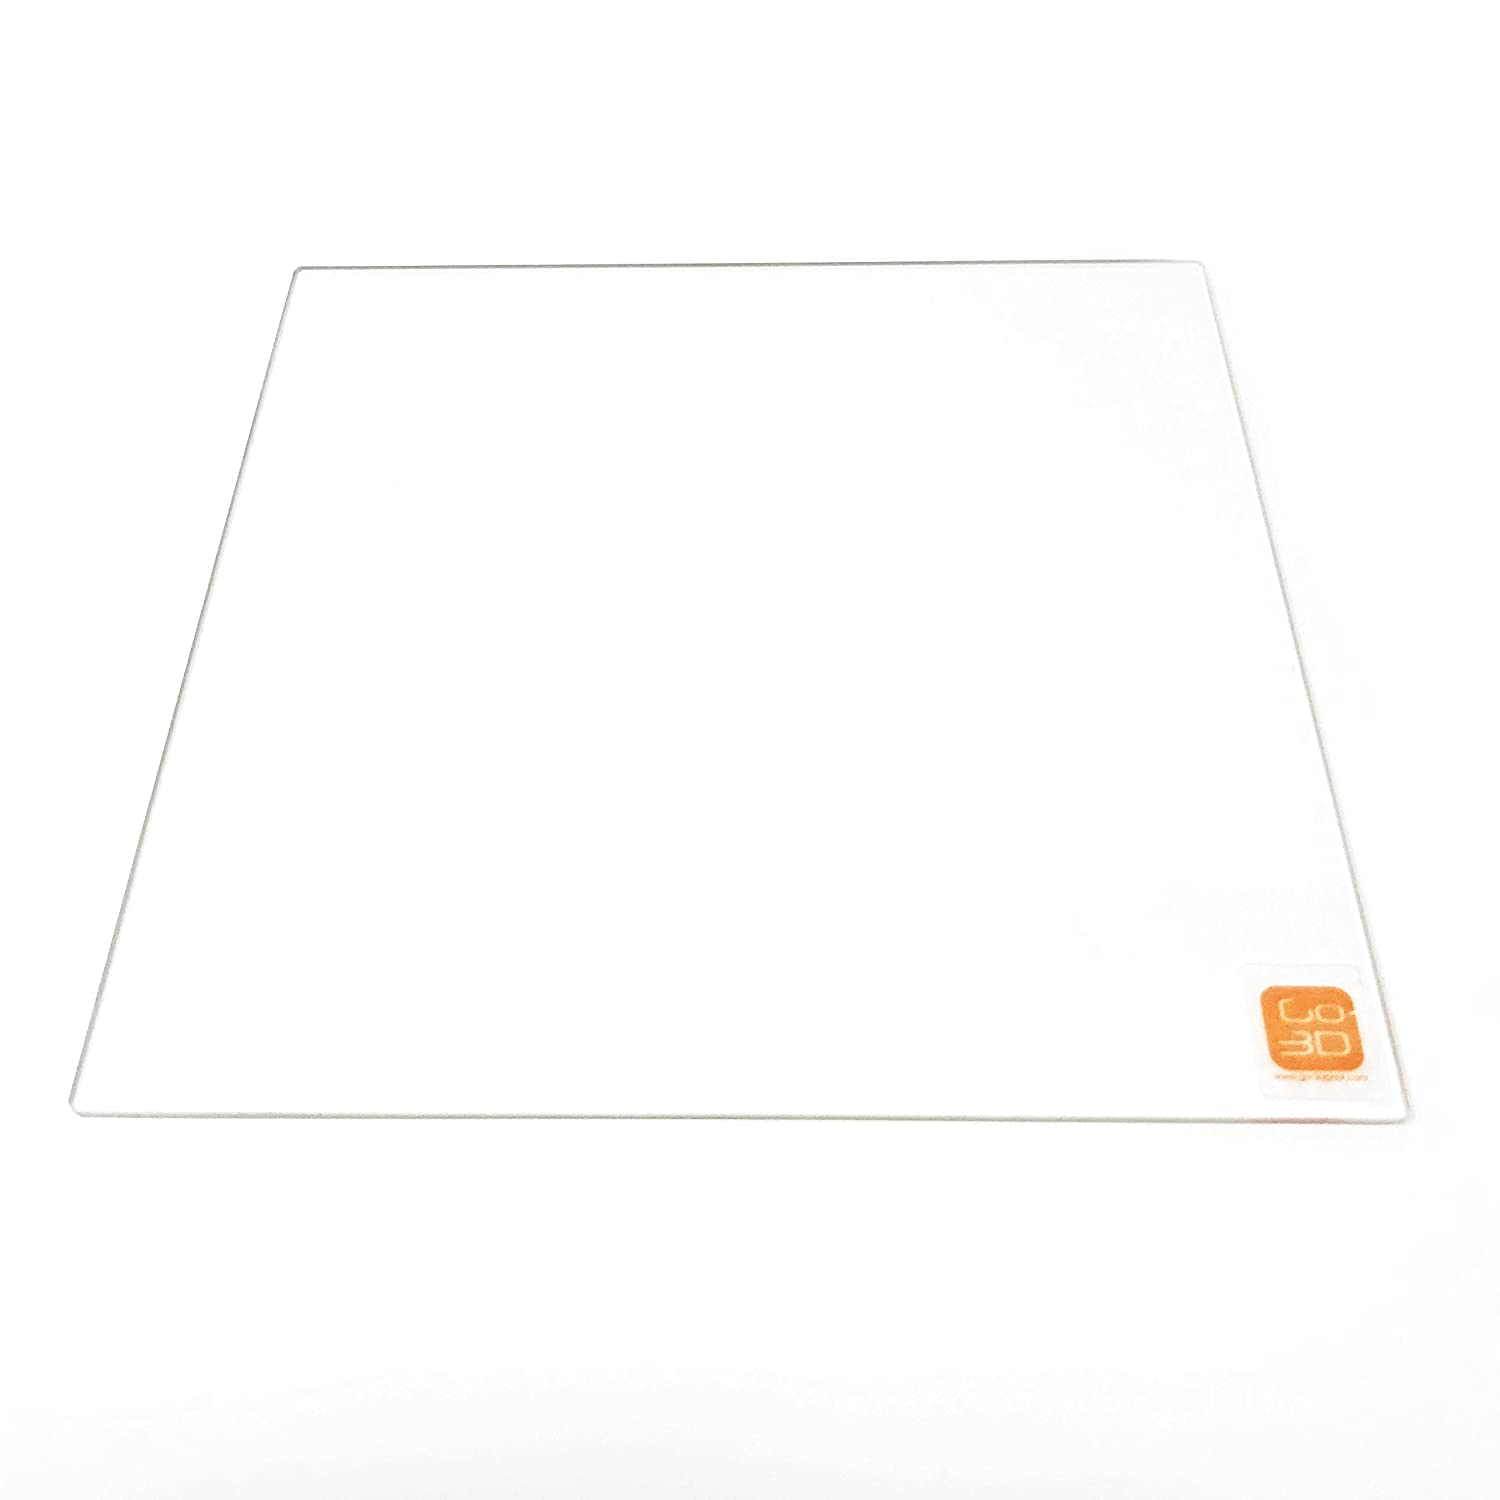 235mm x 235mm Borosilicate Glass Plate for Creality Ender 3 3D Printer GO-3D PRINT